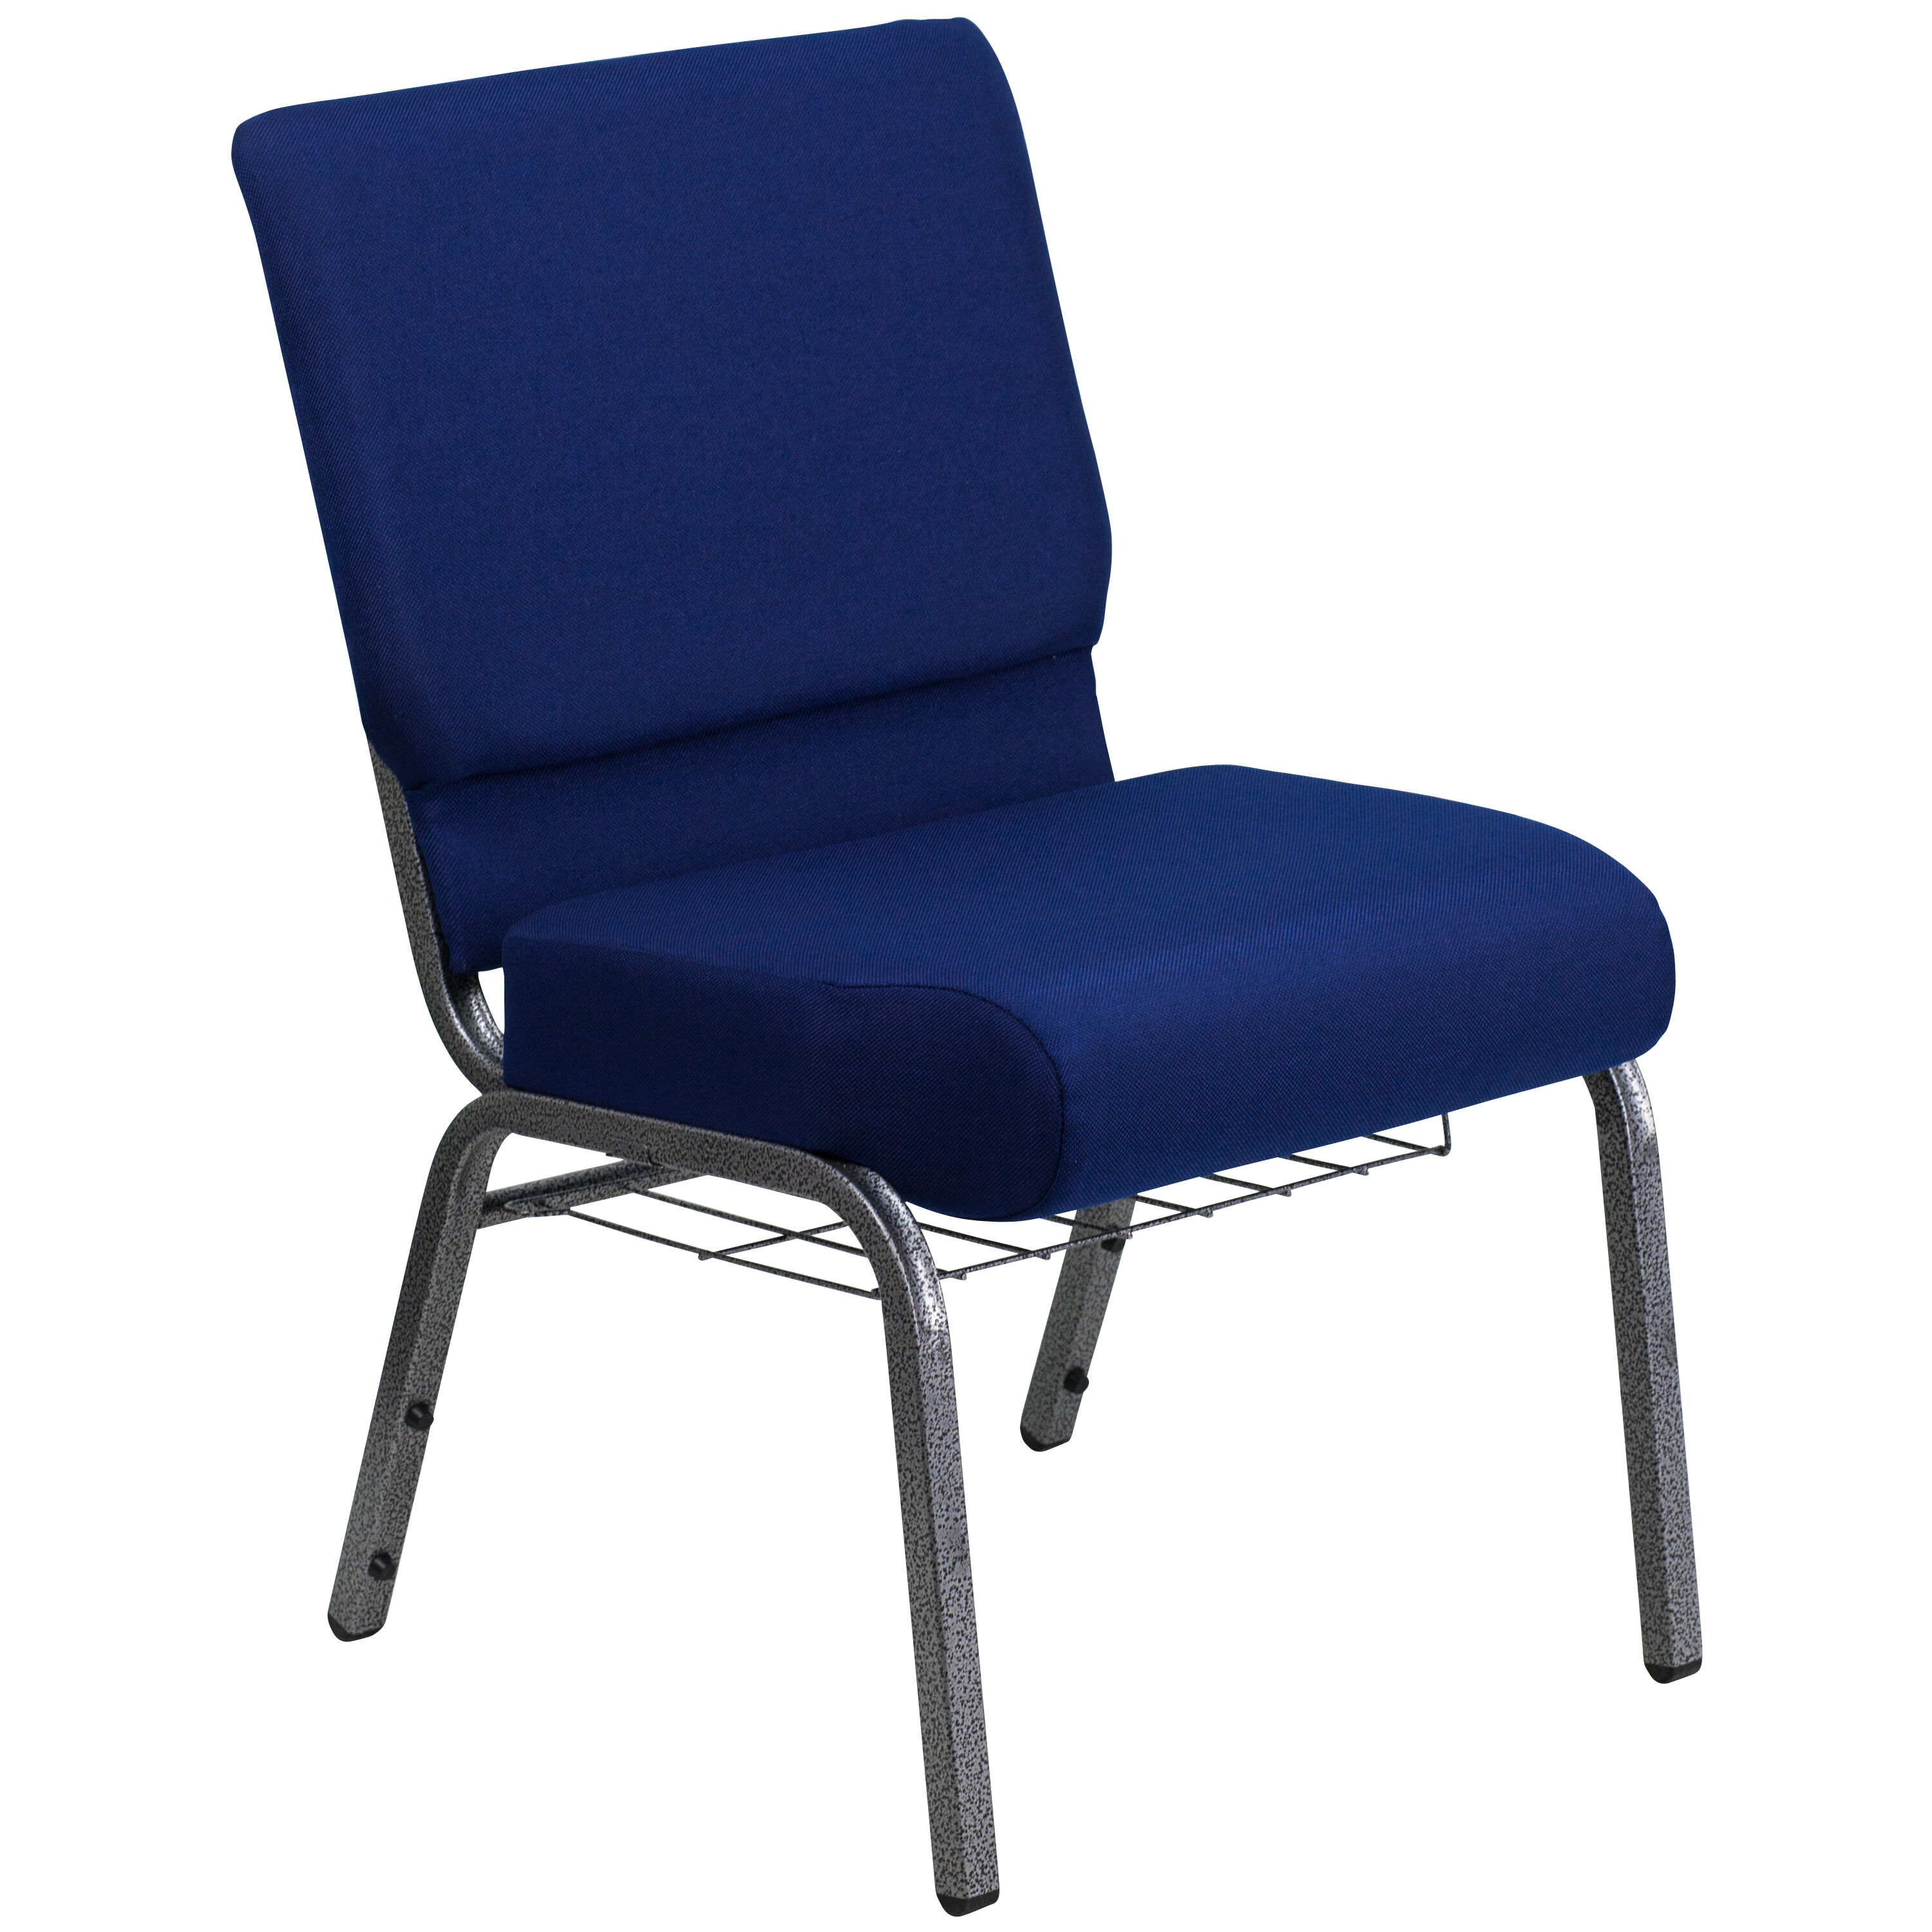 chairs 4 less stackable rolling navy blue fabric church chair fd ch0221 sv nb24 bas gg